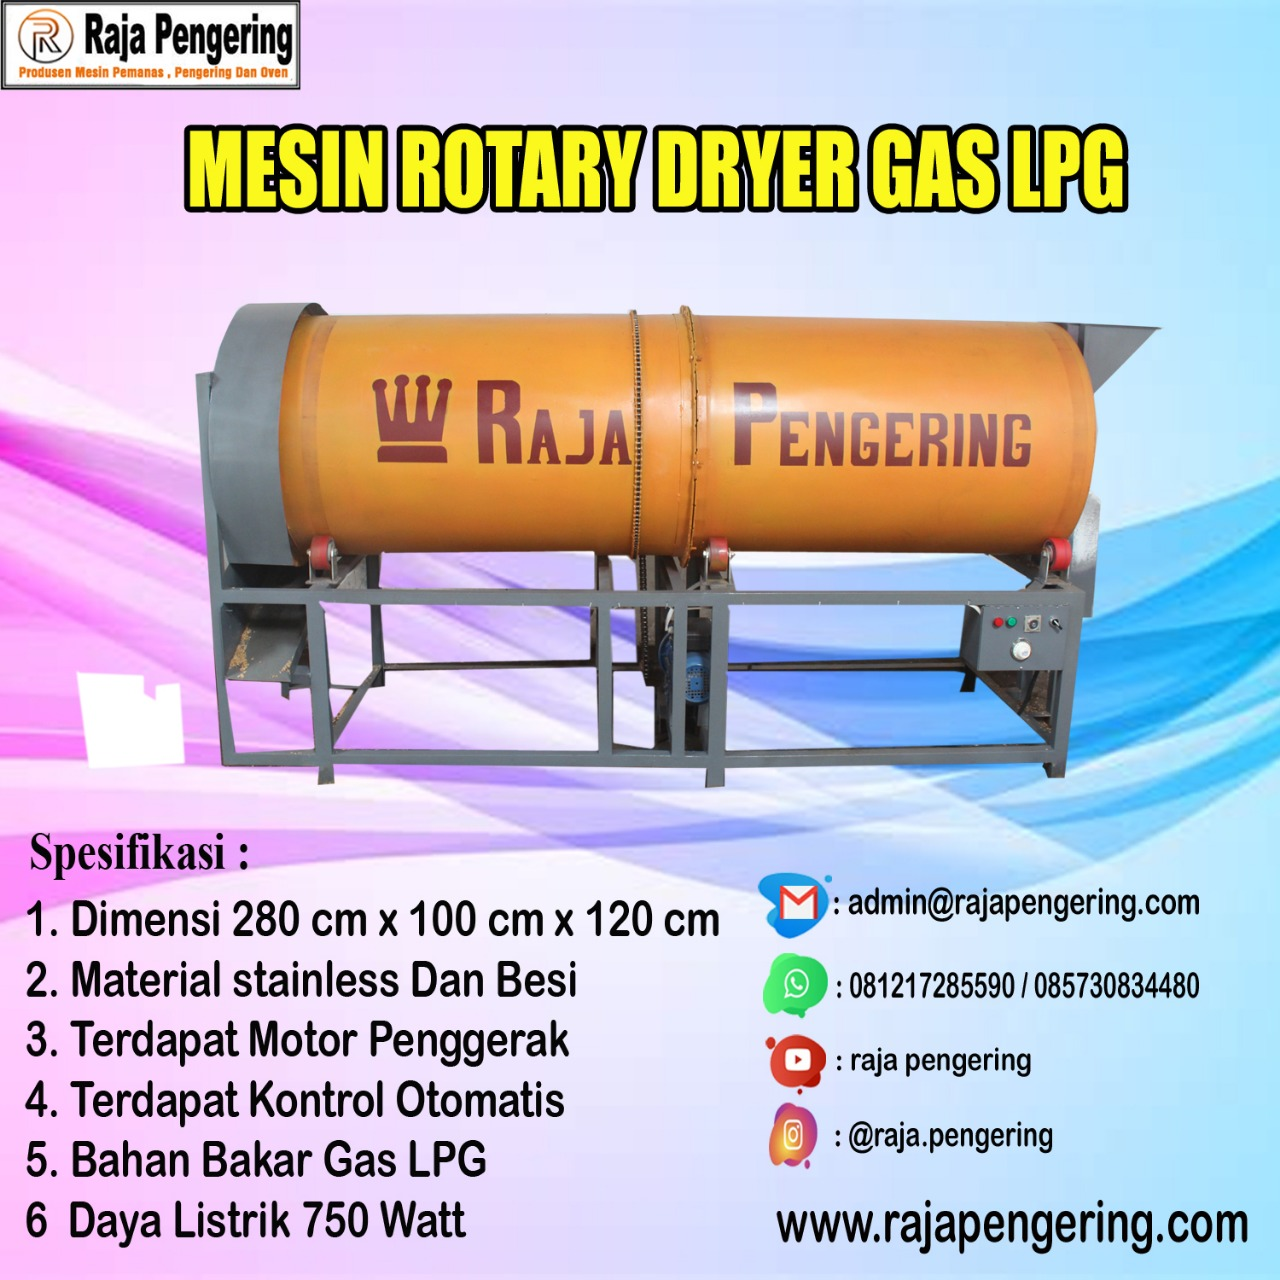 rotary, mesin rotary, rotary dryer